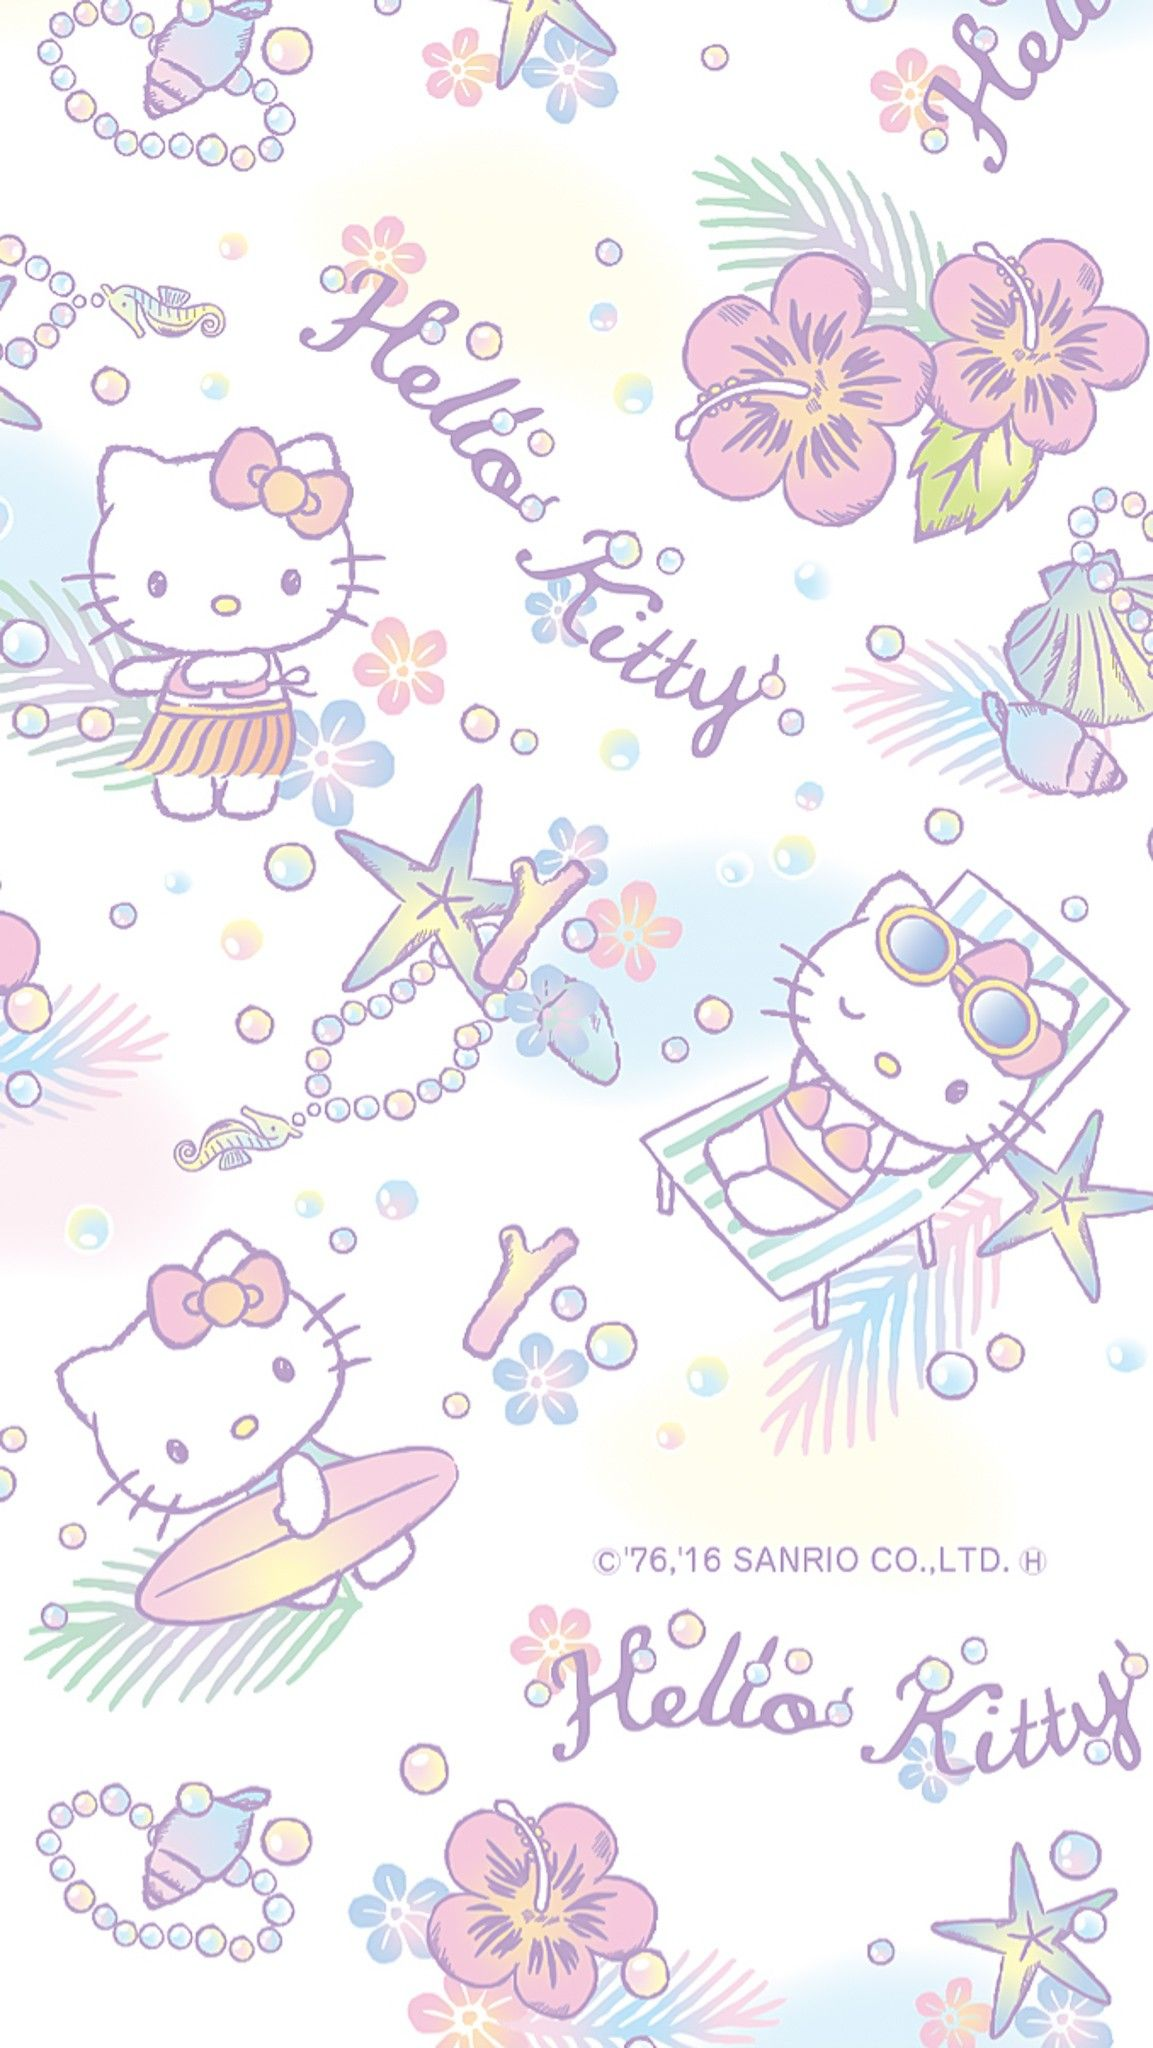 Pin By 6581982530 On Hello Kitty In 2020 Hello Kitty